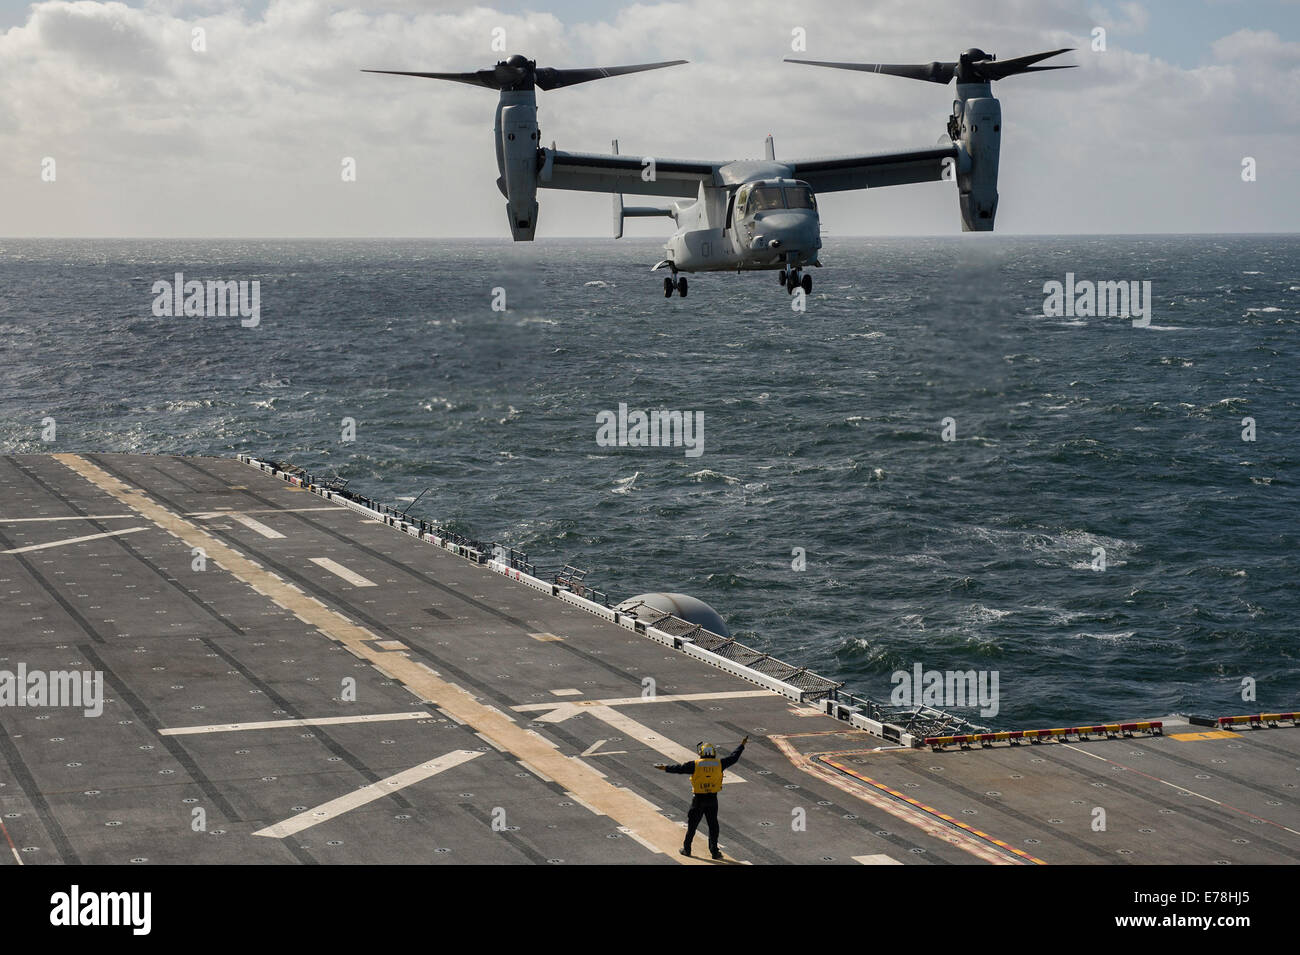 A U.S. Marine Corps MV-22 Osprey tiltrotor aircraft assigned to Marine Operational Test and Evaluation Squadron Stock Photo